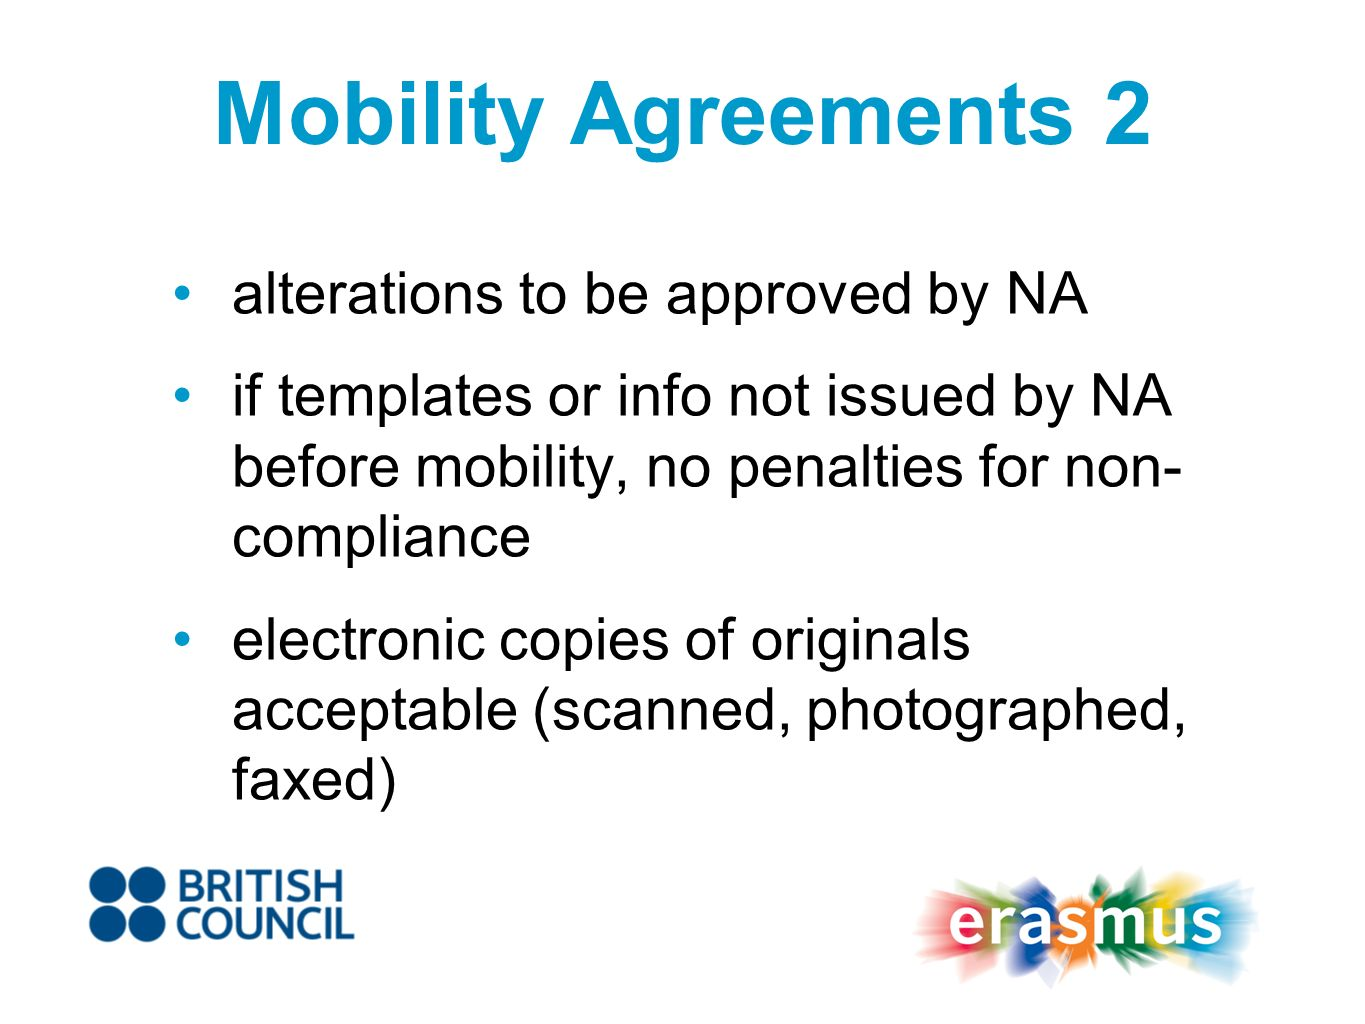 Mobility Agreements 2 alterations to be approved by NA if templates or info not issued by NA before mobility, no penalties for non- compliance electronic copies of originals acceptable (scanned, photographed, faxed)